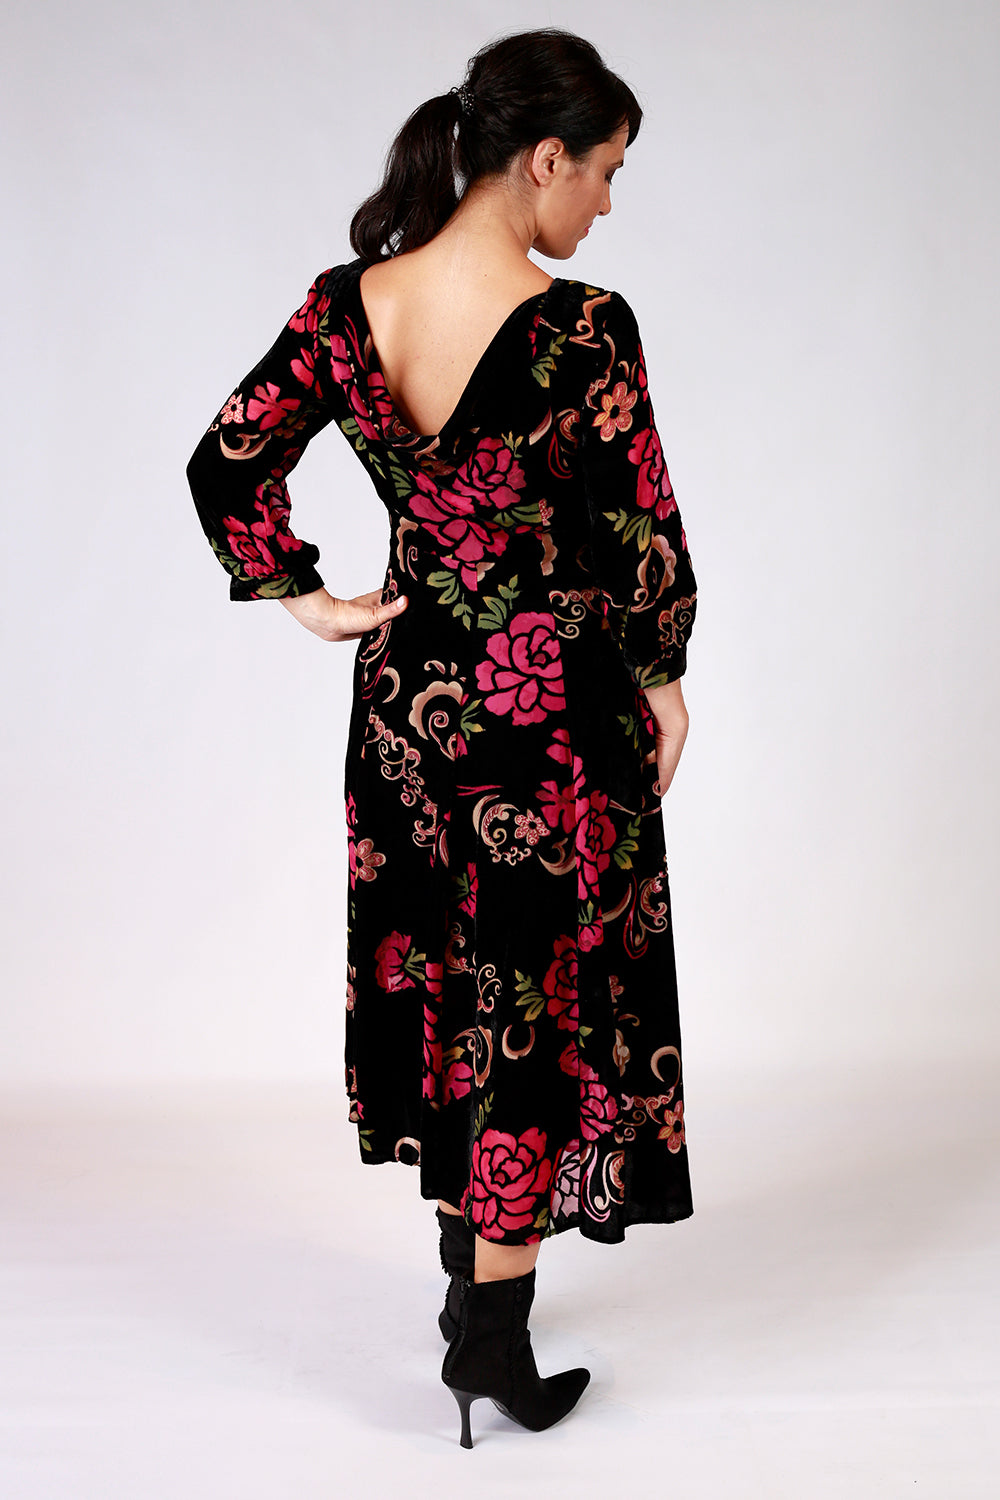 Coming Up Roses Dress